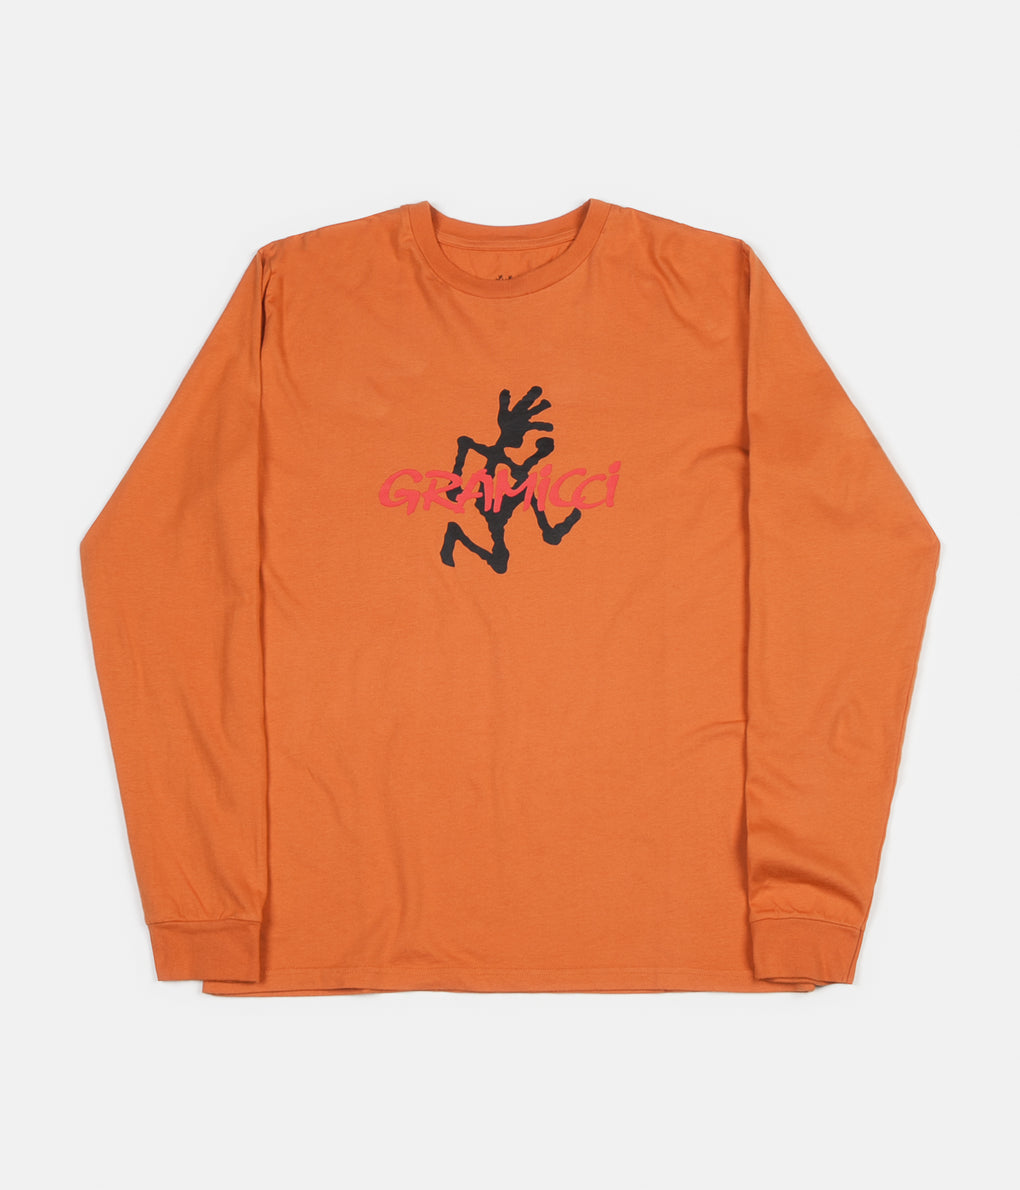 Gramicci Japan Logo Long Sleeve T-Shirt - Maple